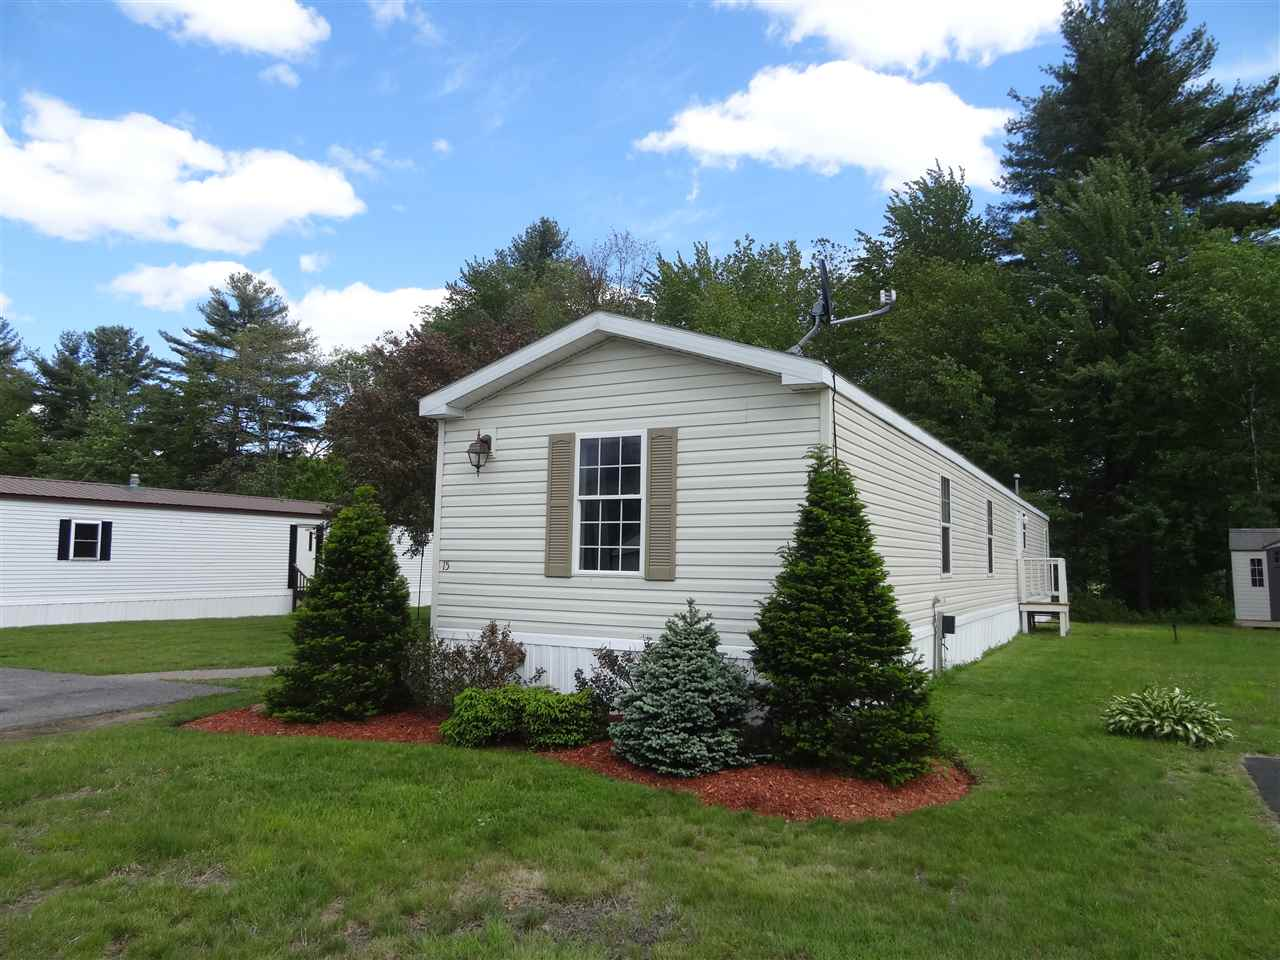 Photo of 15 Rex Drive Concord NH 03303